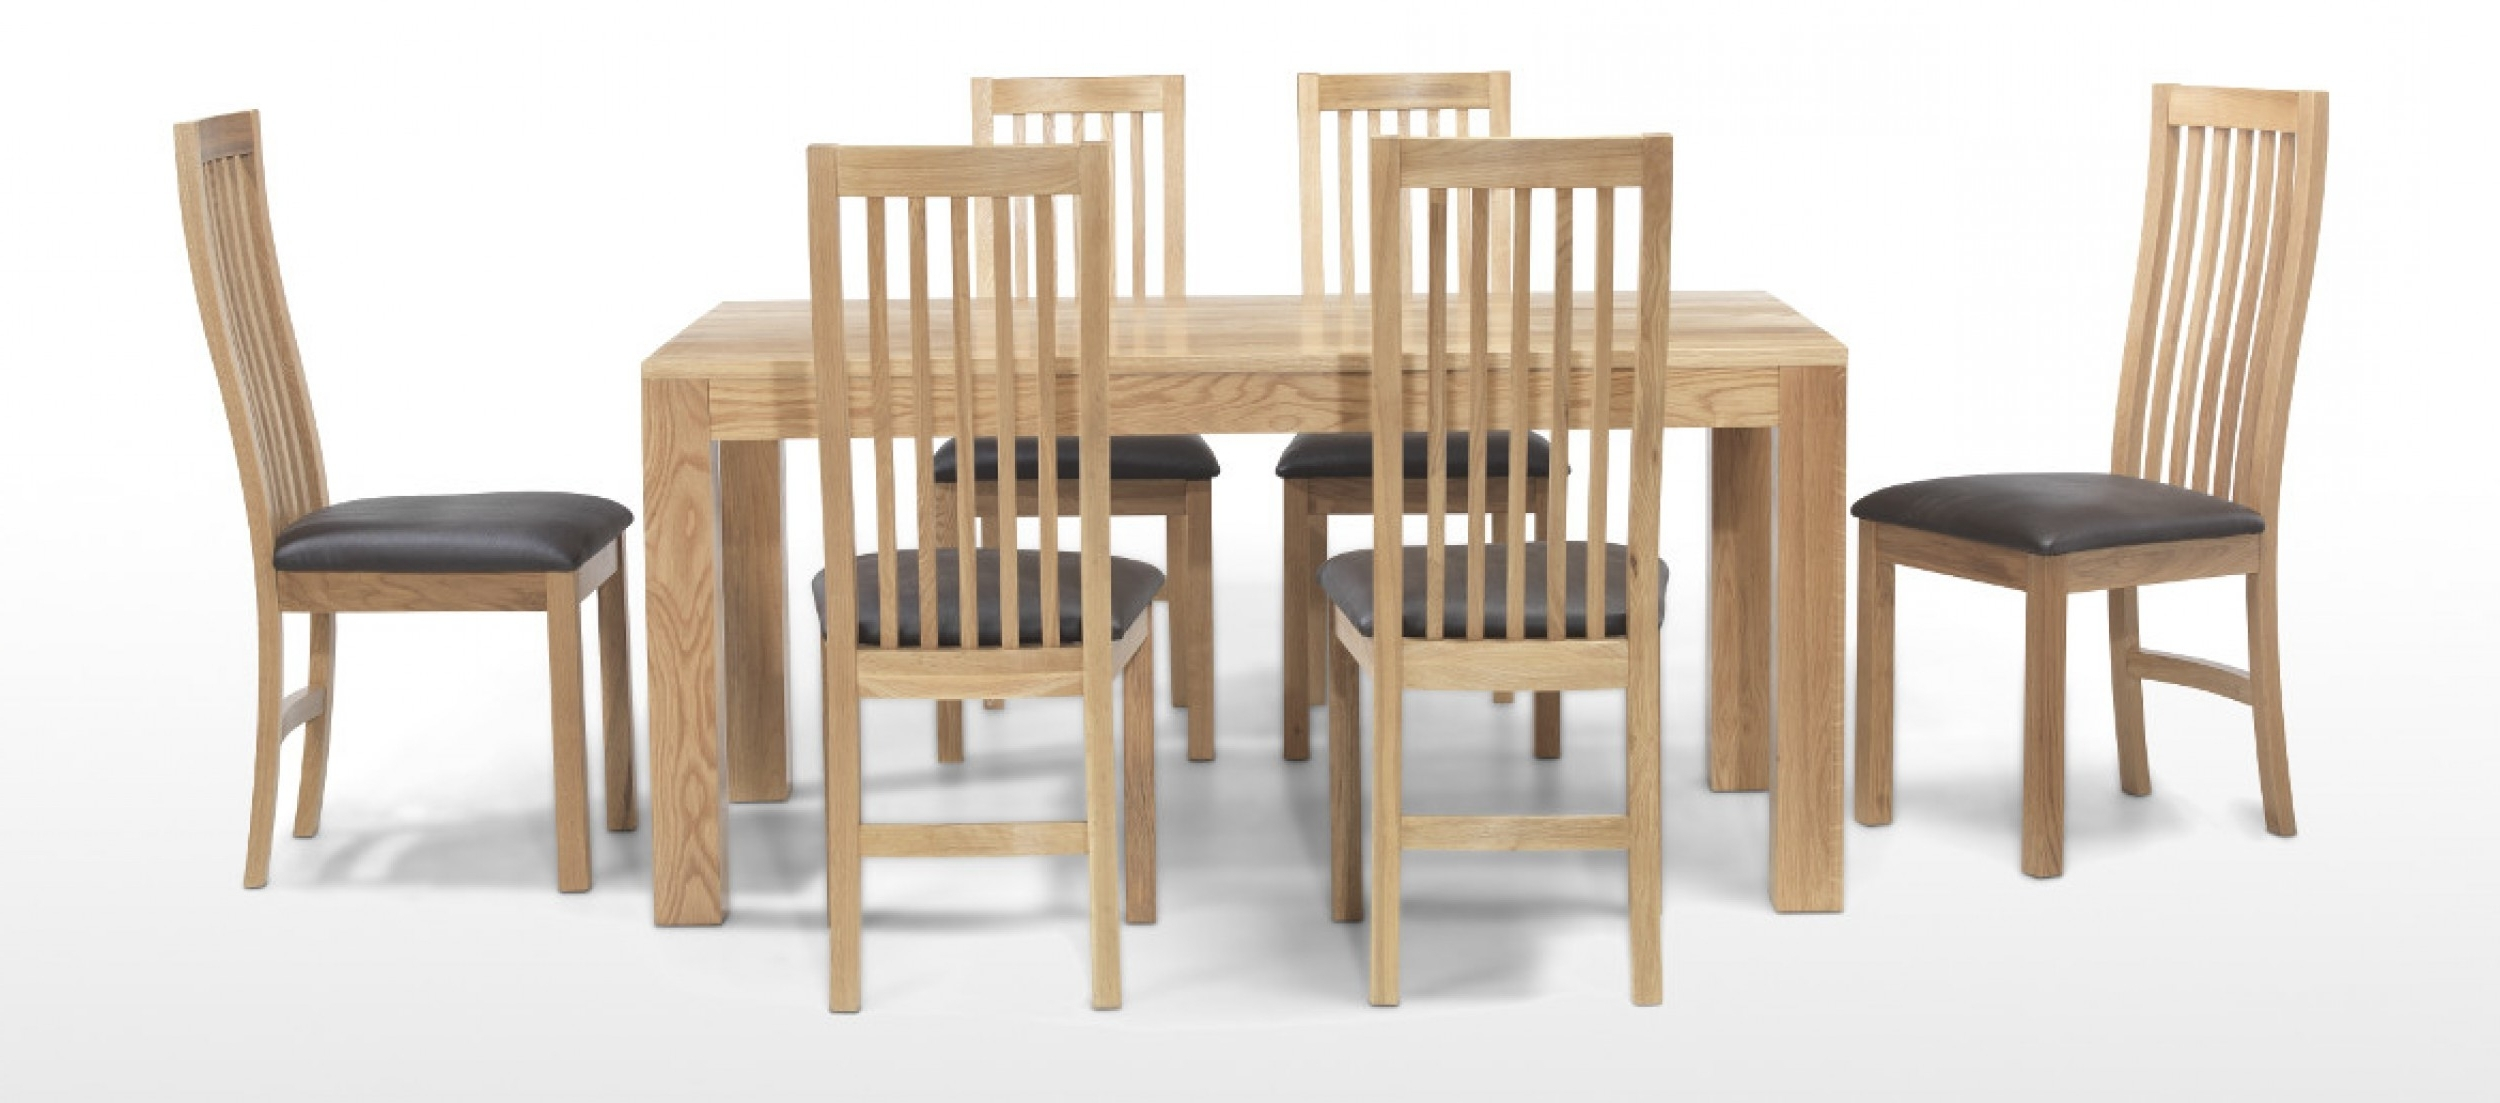 How And Why To Pick Oak Dining Table And Chairs – Blogbeen For Latest Oak Dining Tables And Chairs (Gallery 2 of 25)